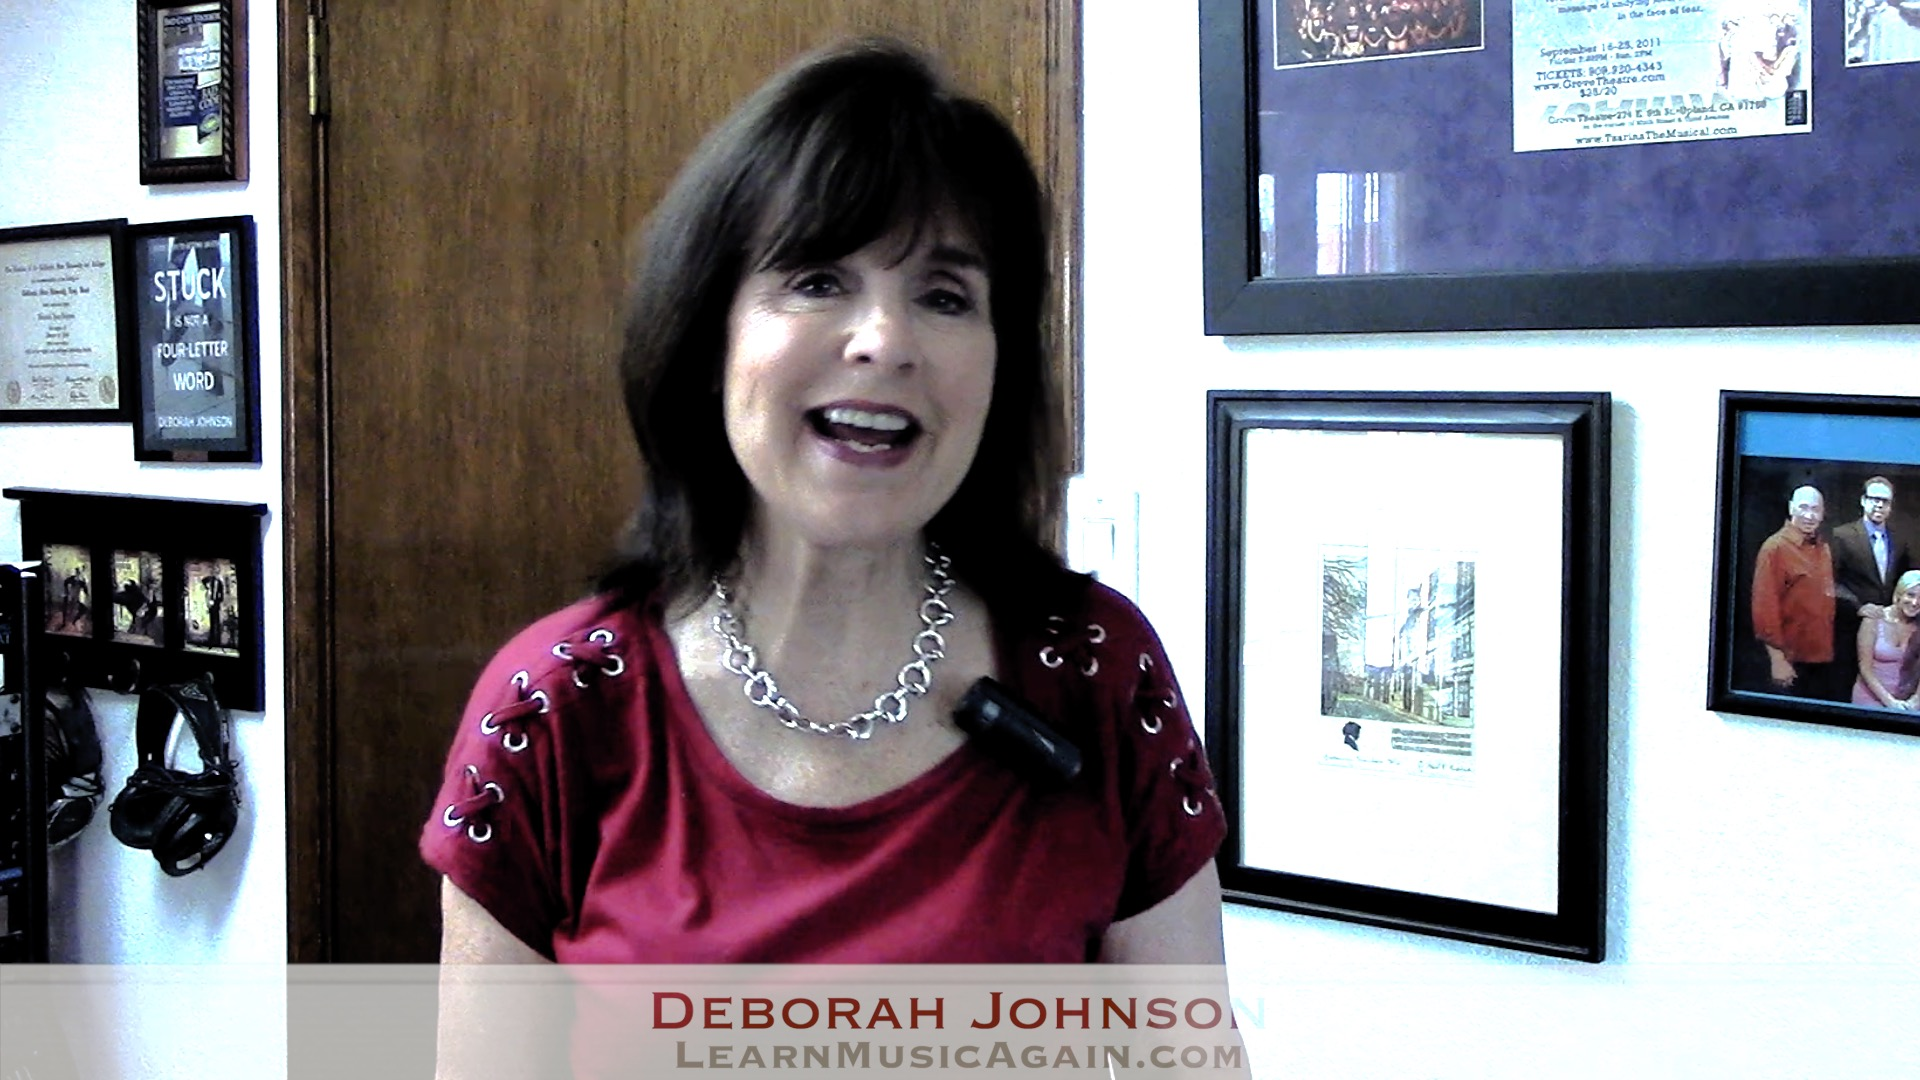 Learn Music Again Q&A-Deborah Johnson